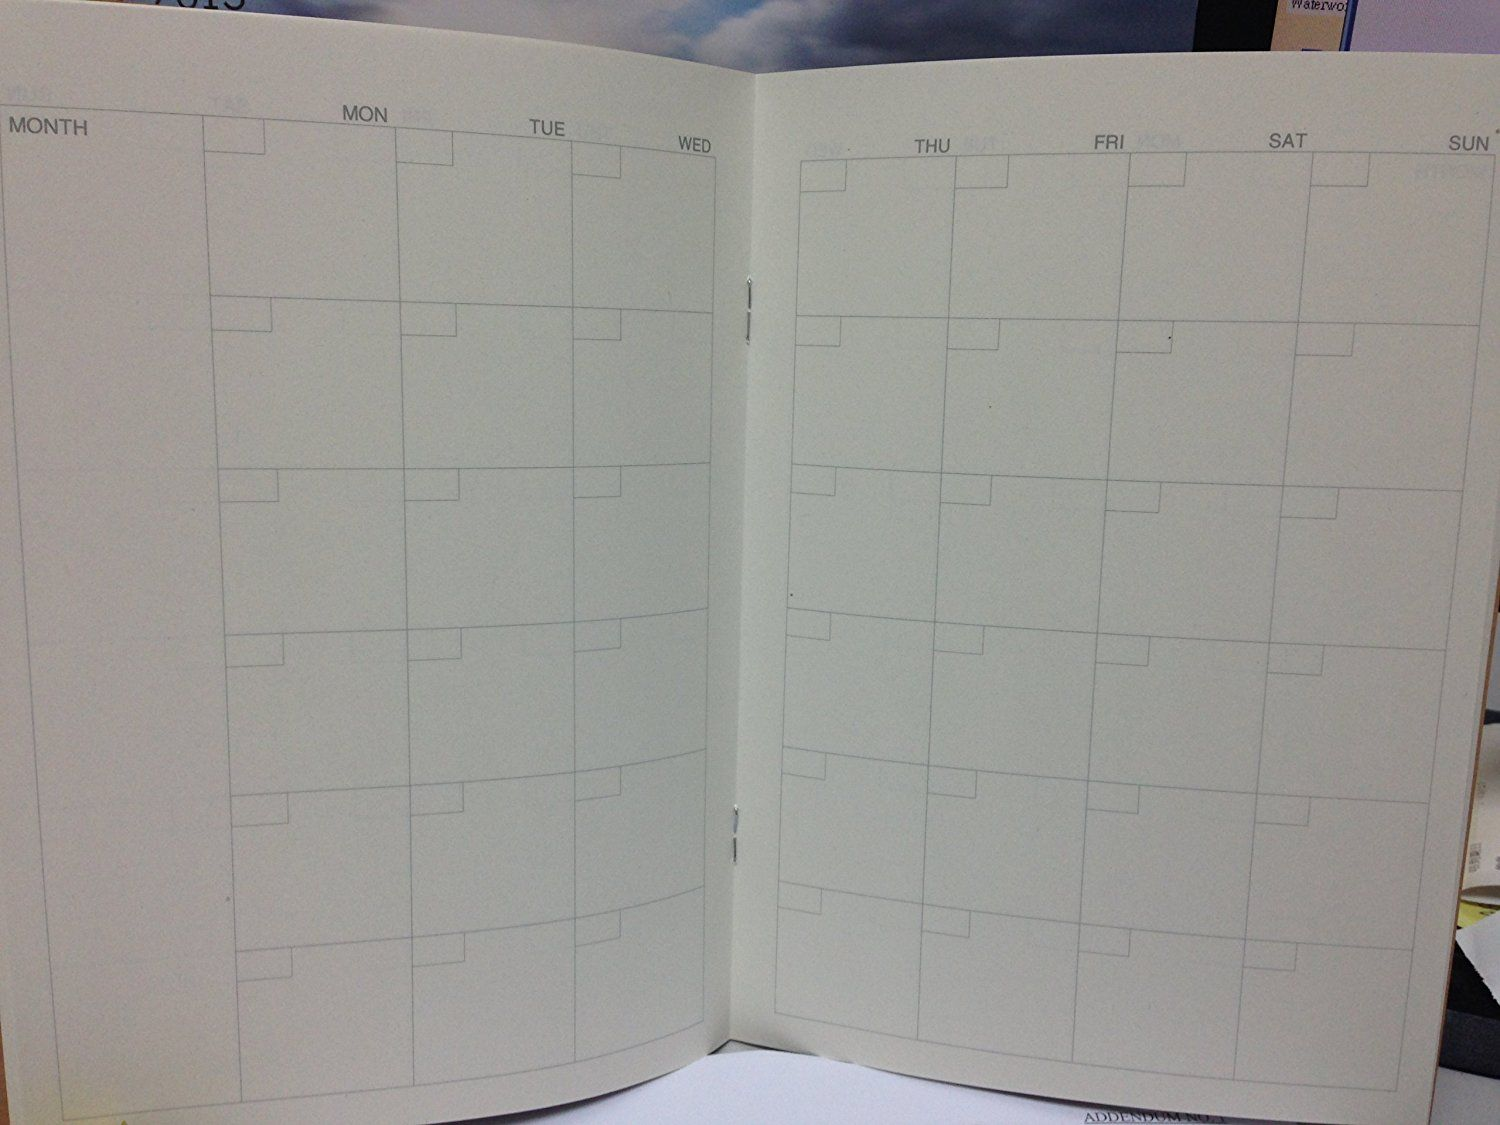 Office Products Memo & Scratch Pads ghdonat.com For Monthly 32 ...